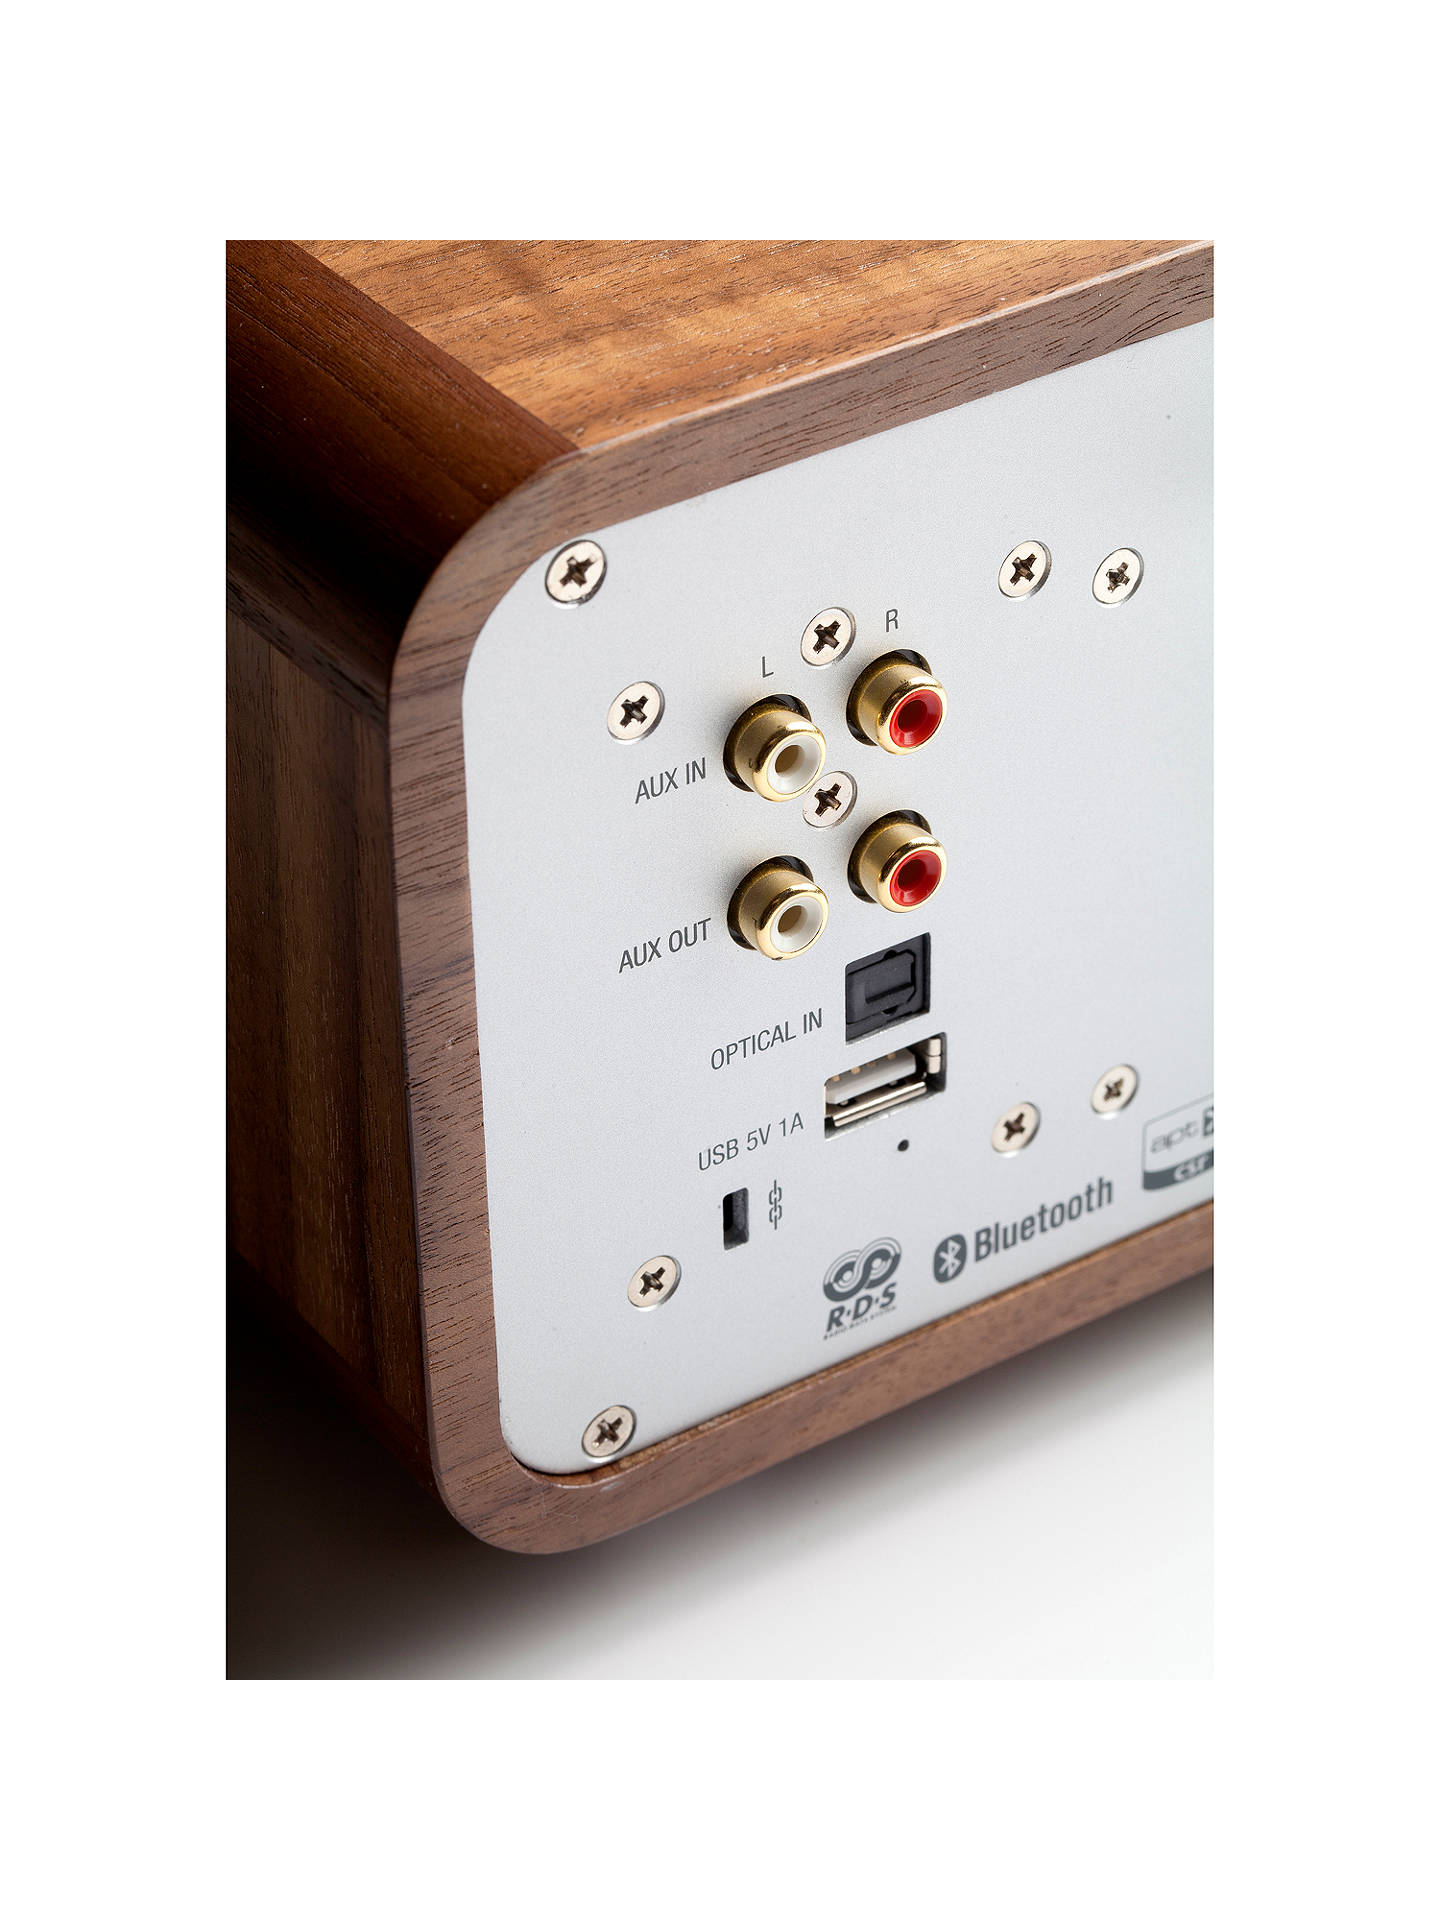 BuyRuark R4 MK3 DAB/DAB+/FM Radio & CD Bluetooth All-In-One Music System with OLED Display, Rich Walnut Online at johnlewis.com